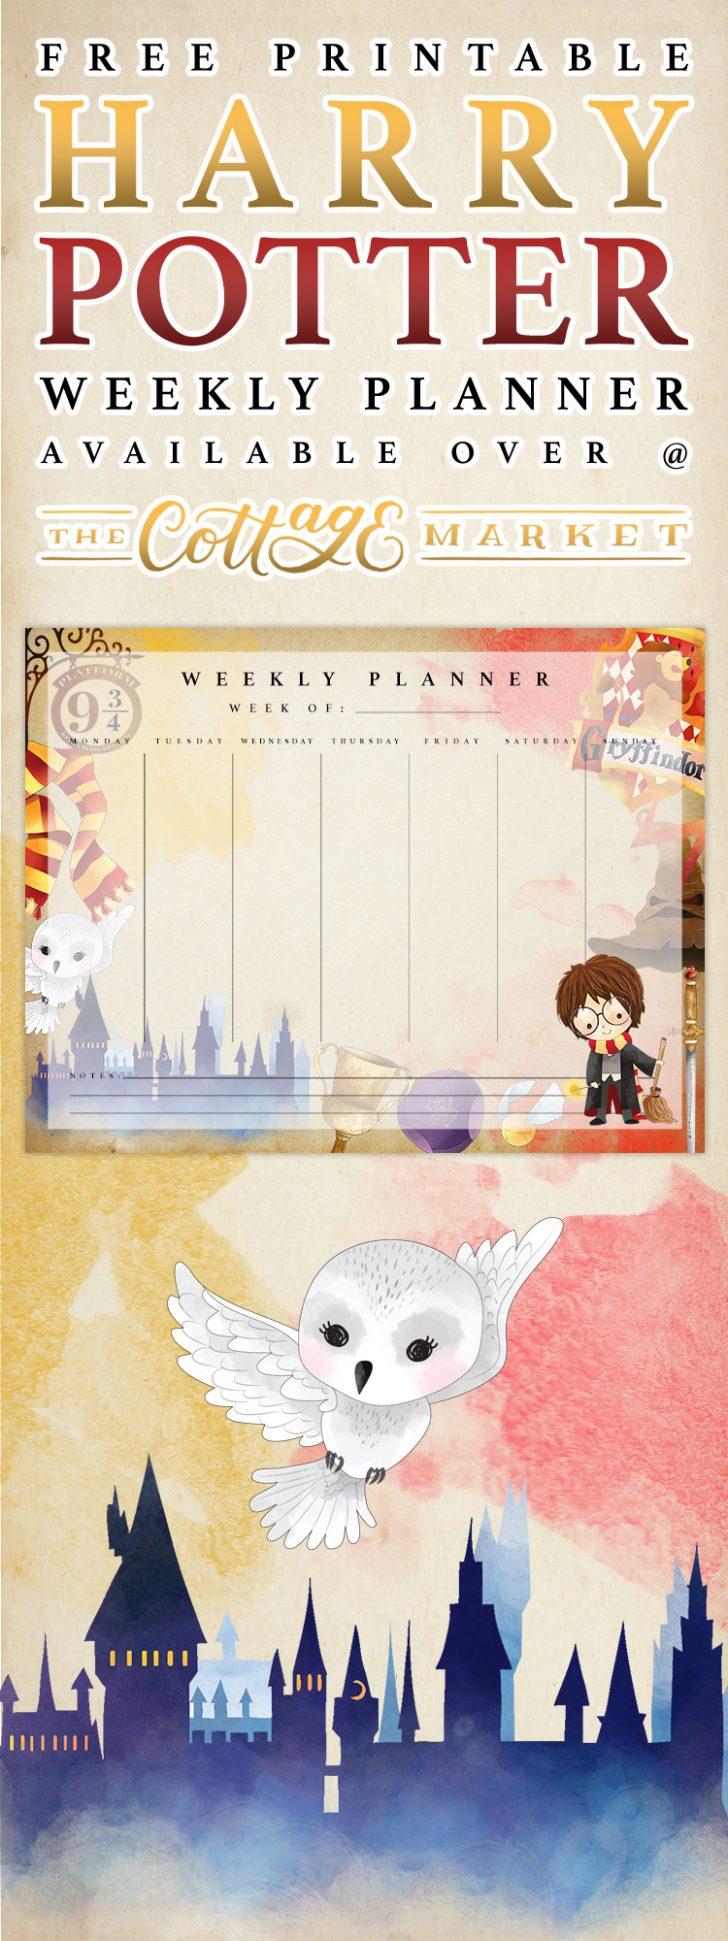 Free Printable Harry Potter Pictures